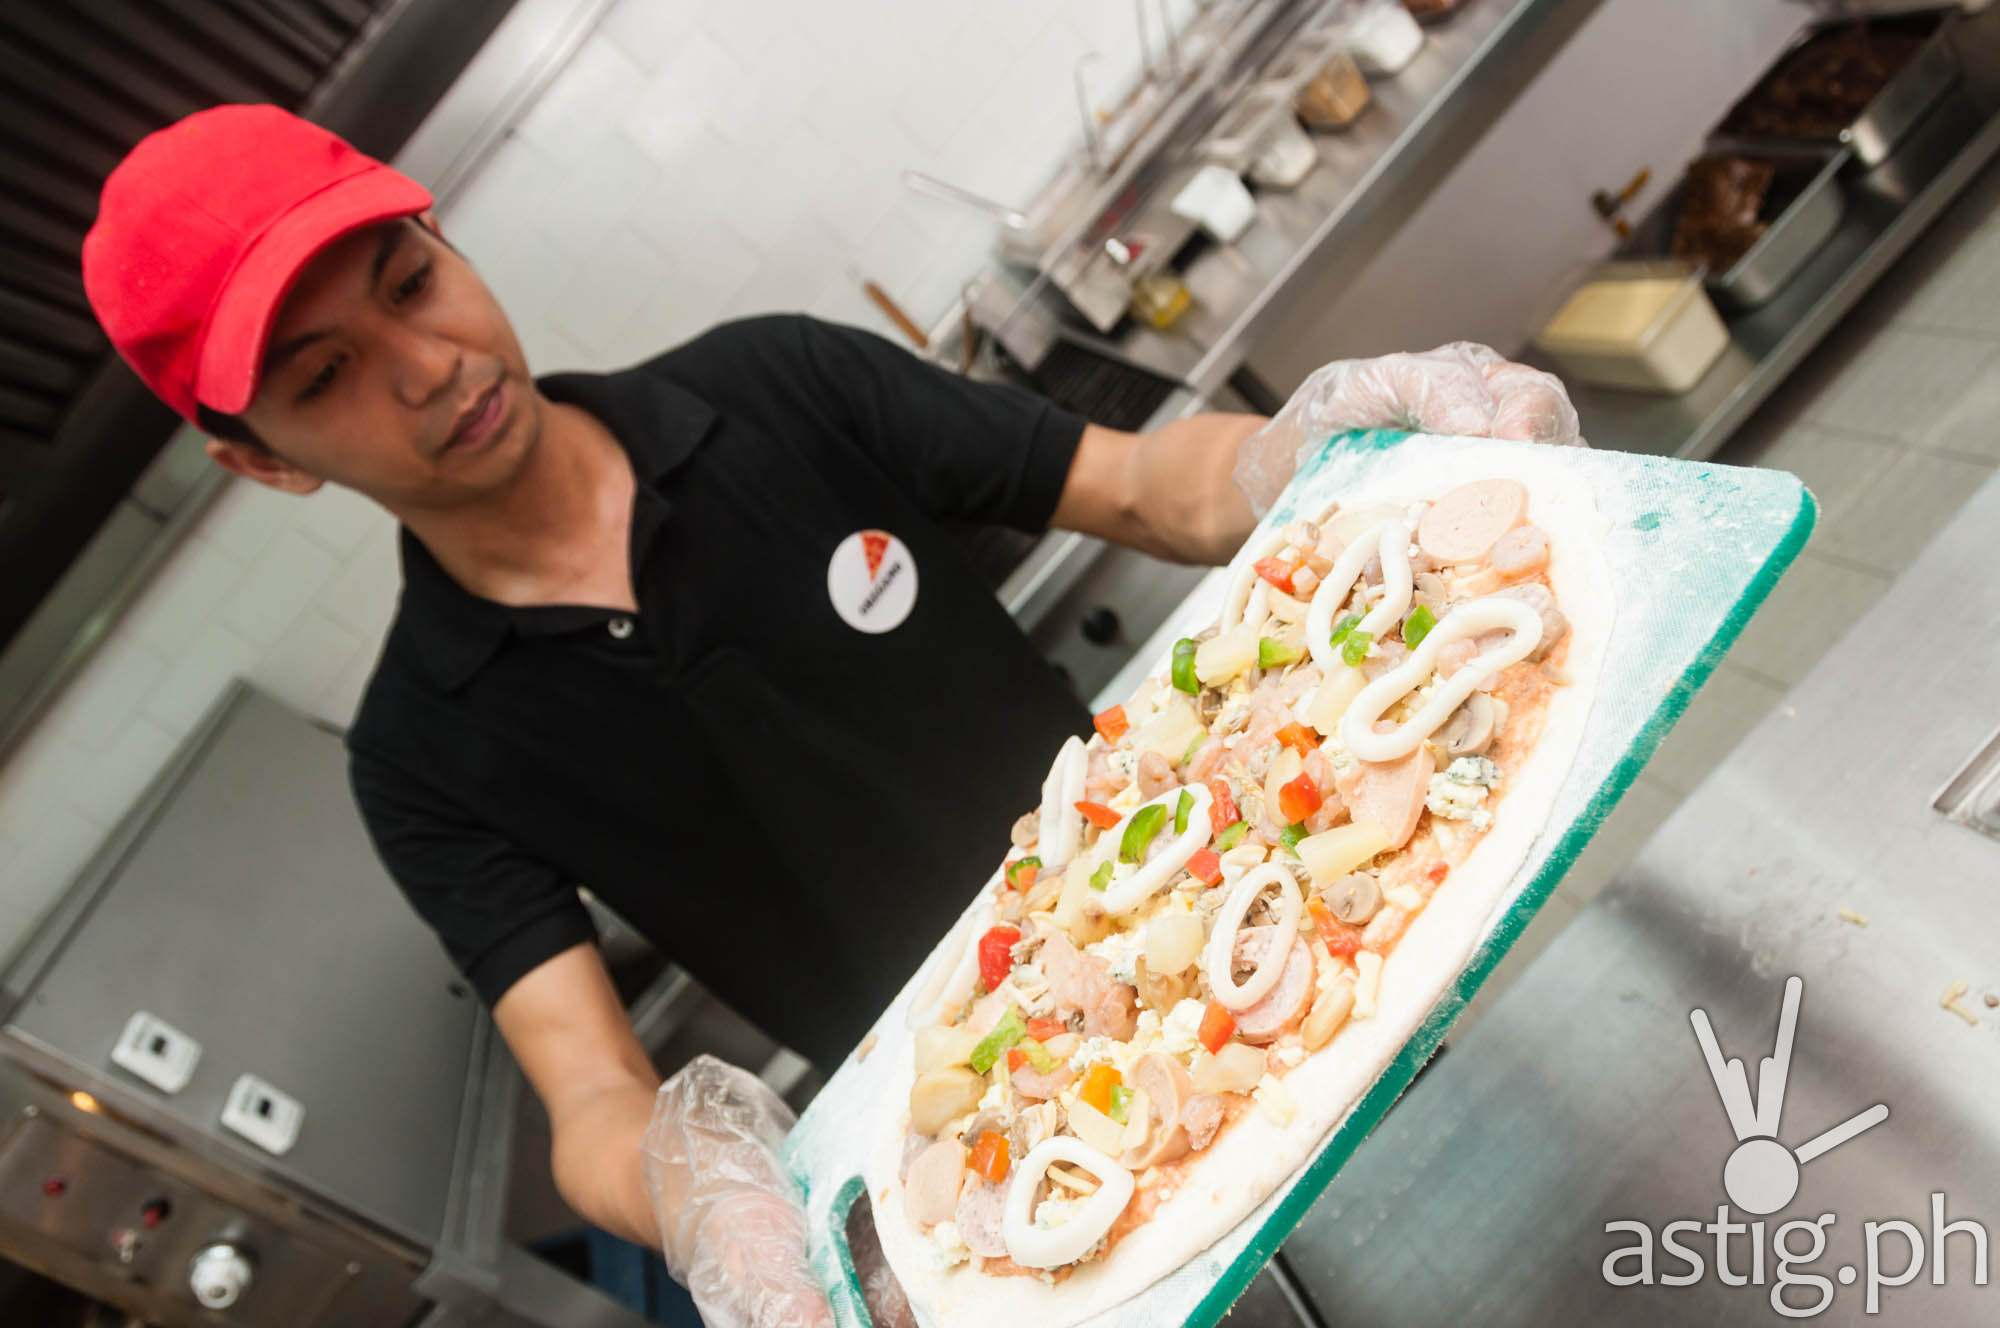 Mad for Pizza lets you create your own hand-tossed, freshly prepared pizza (280 PHP)